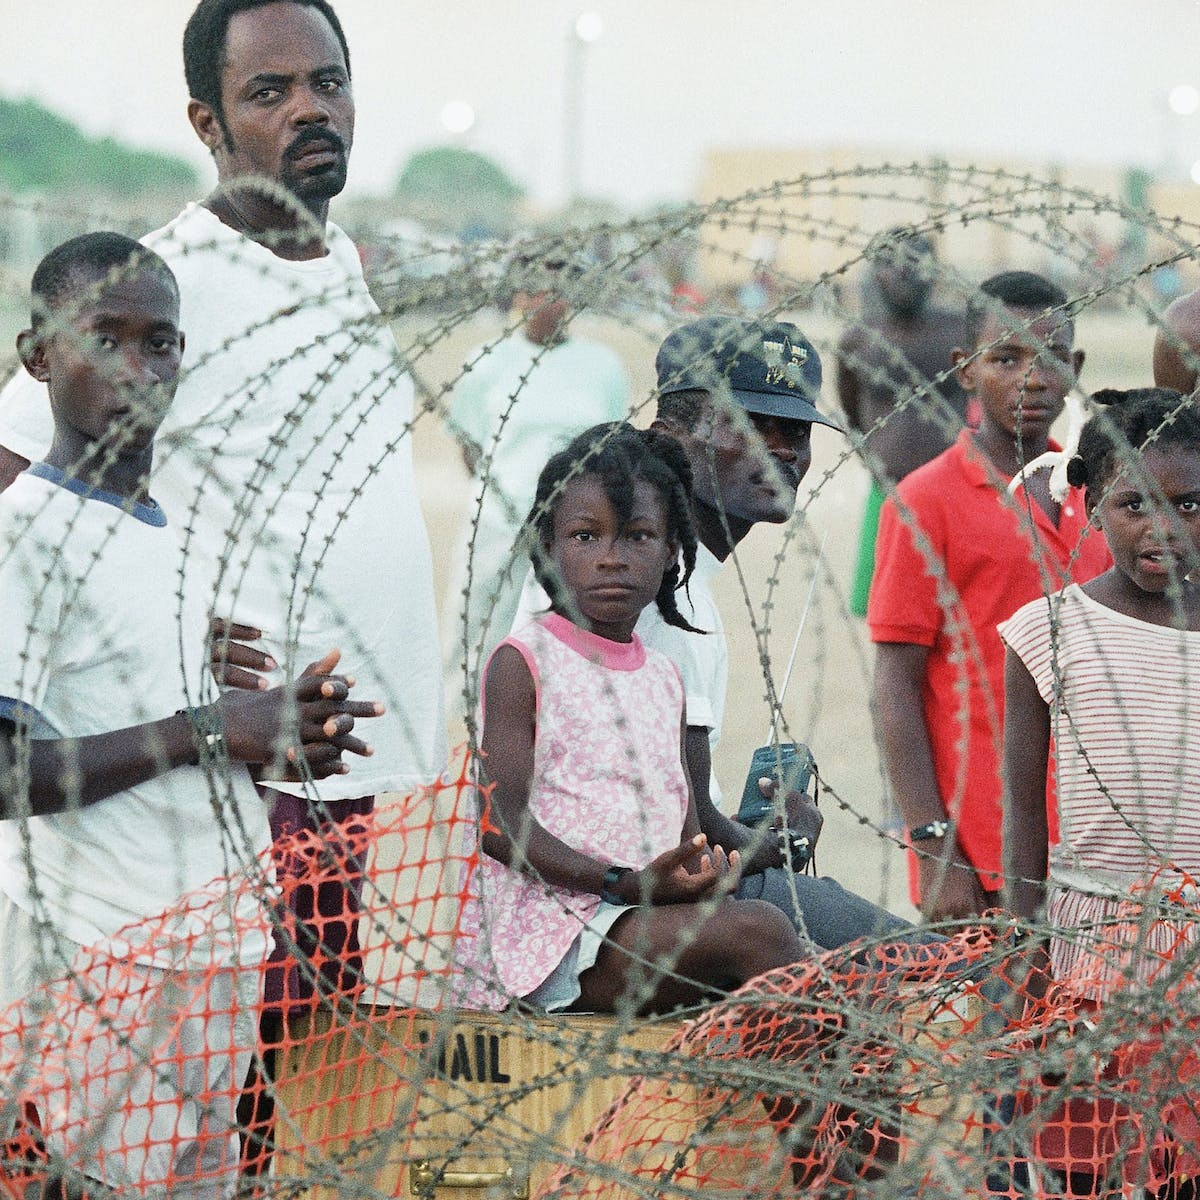 US turned away thousands of Haitian asylum-seekers and